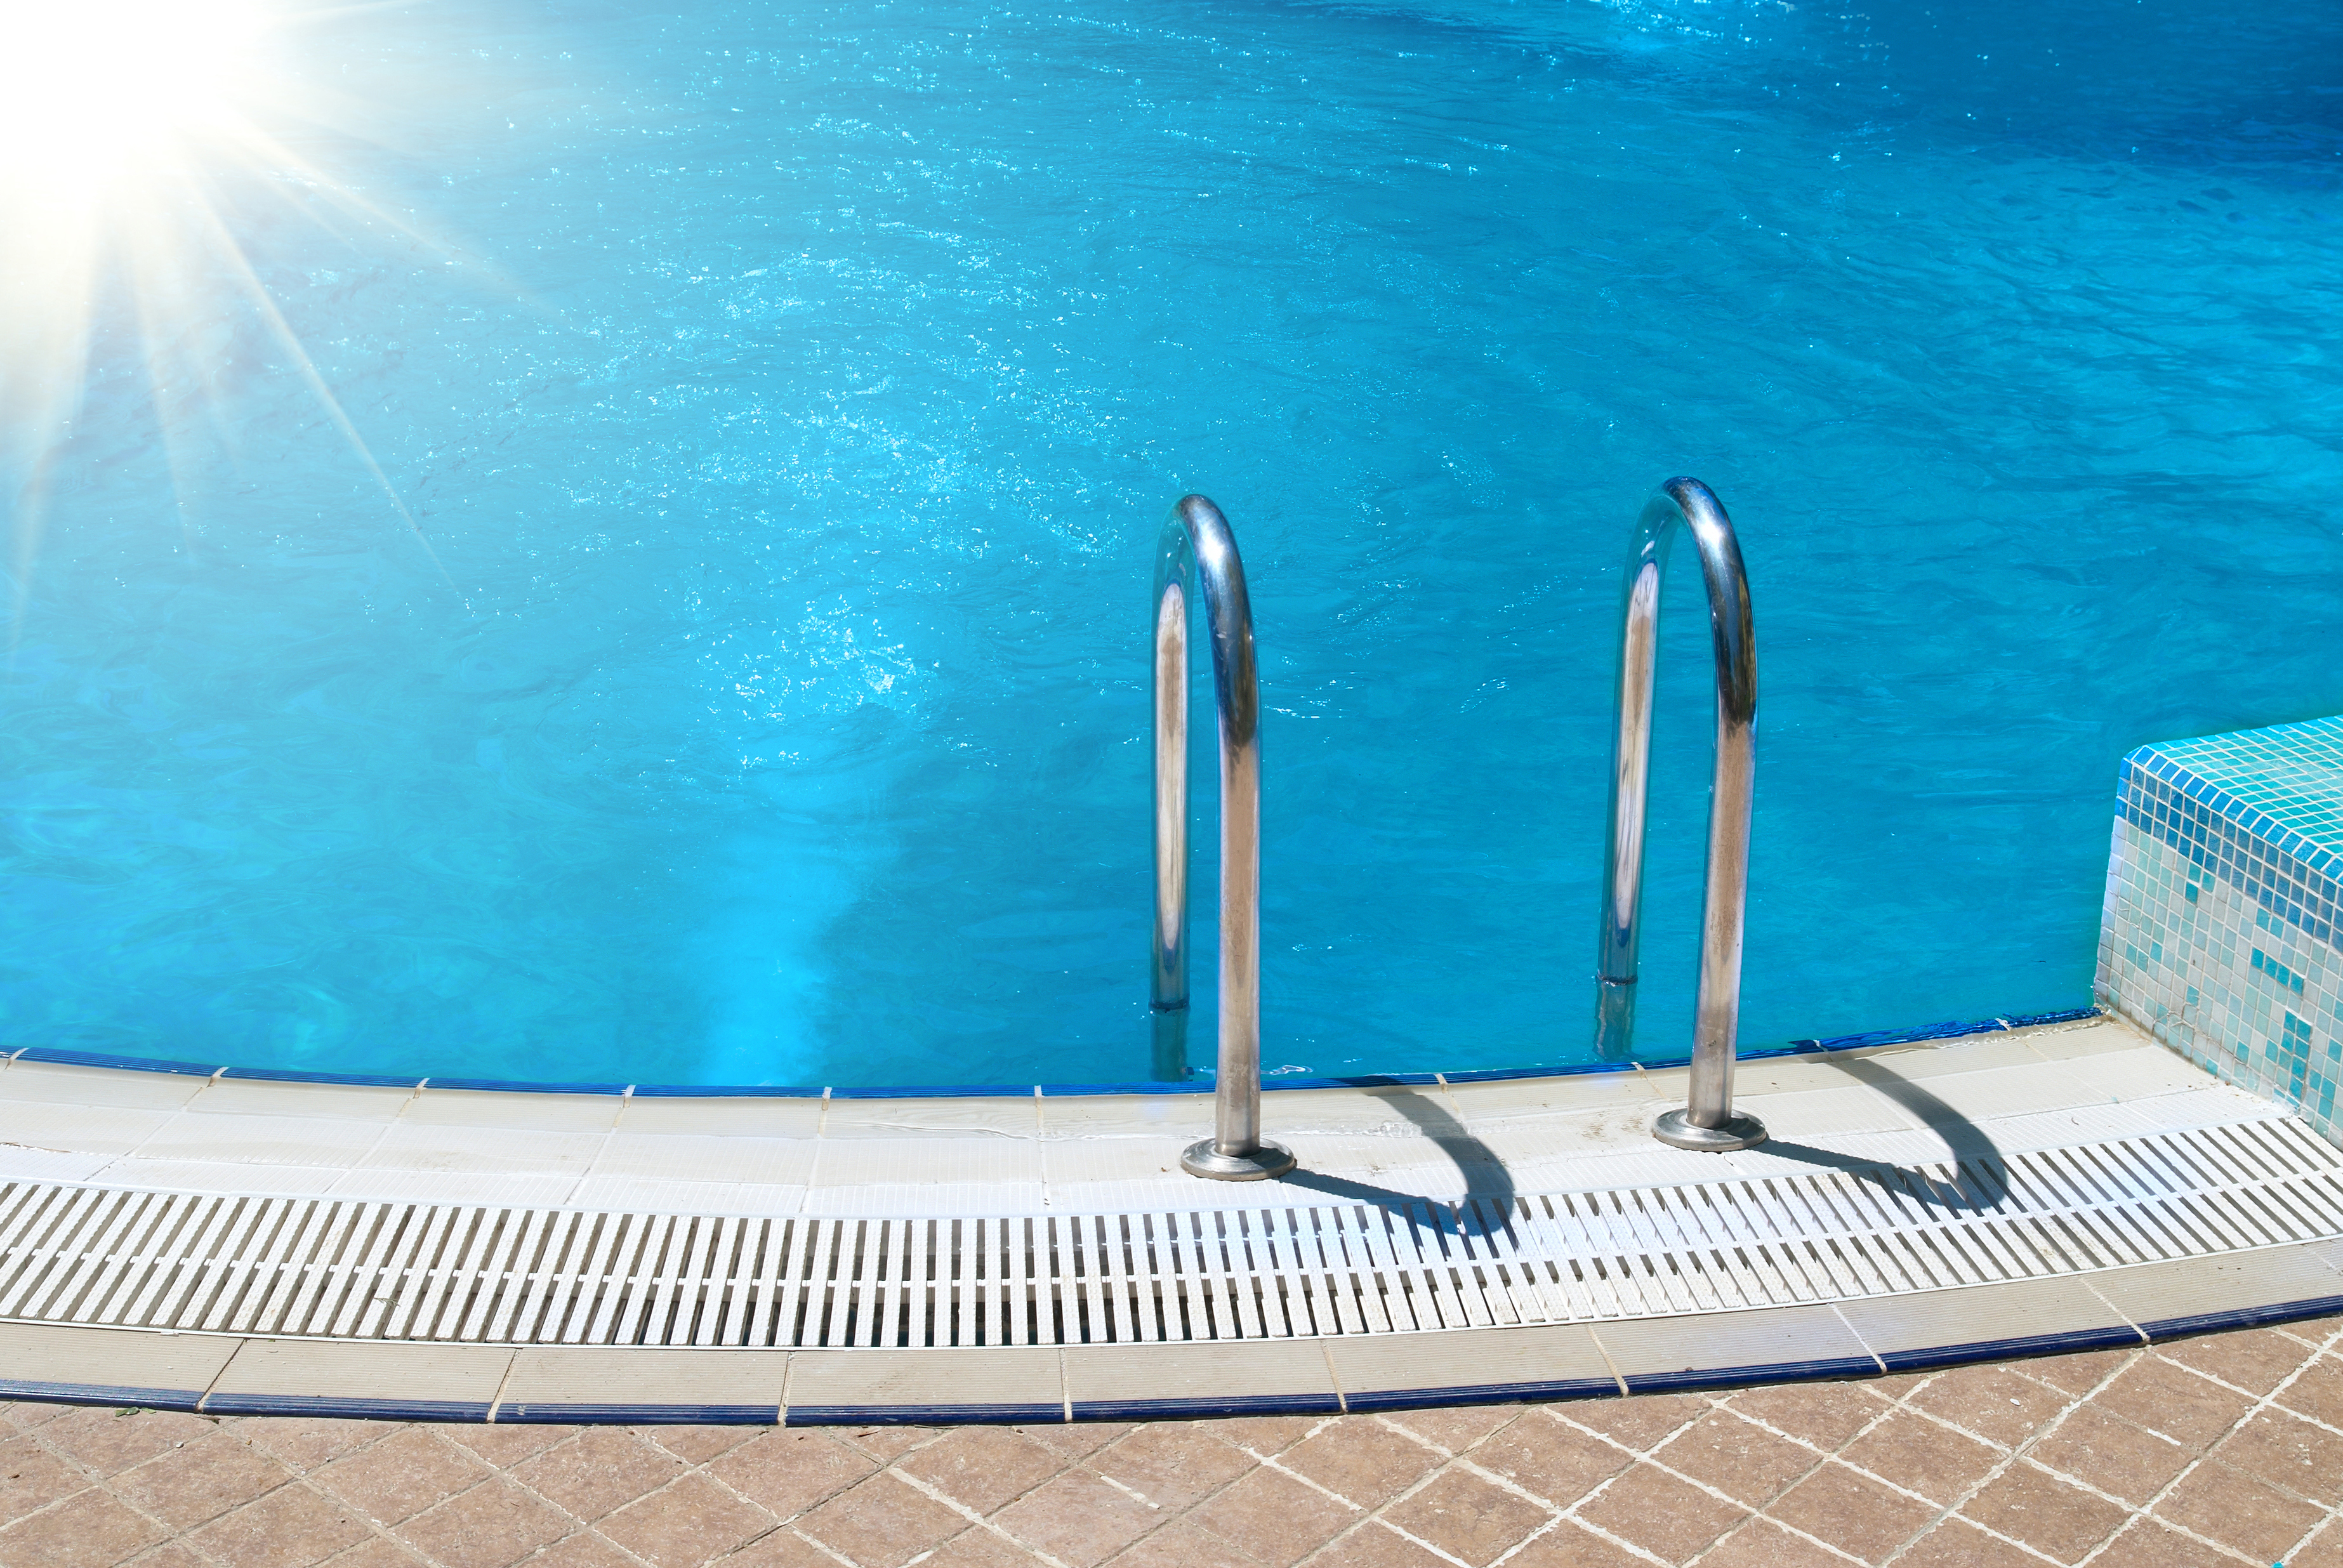 Swimming Pool Maintenance swimming pool maintenance archives - a better pool service